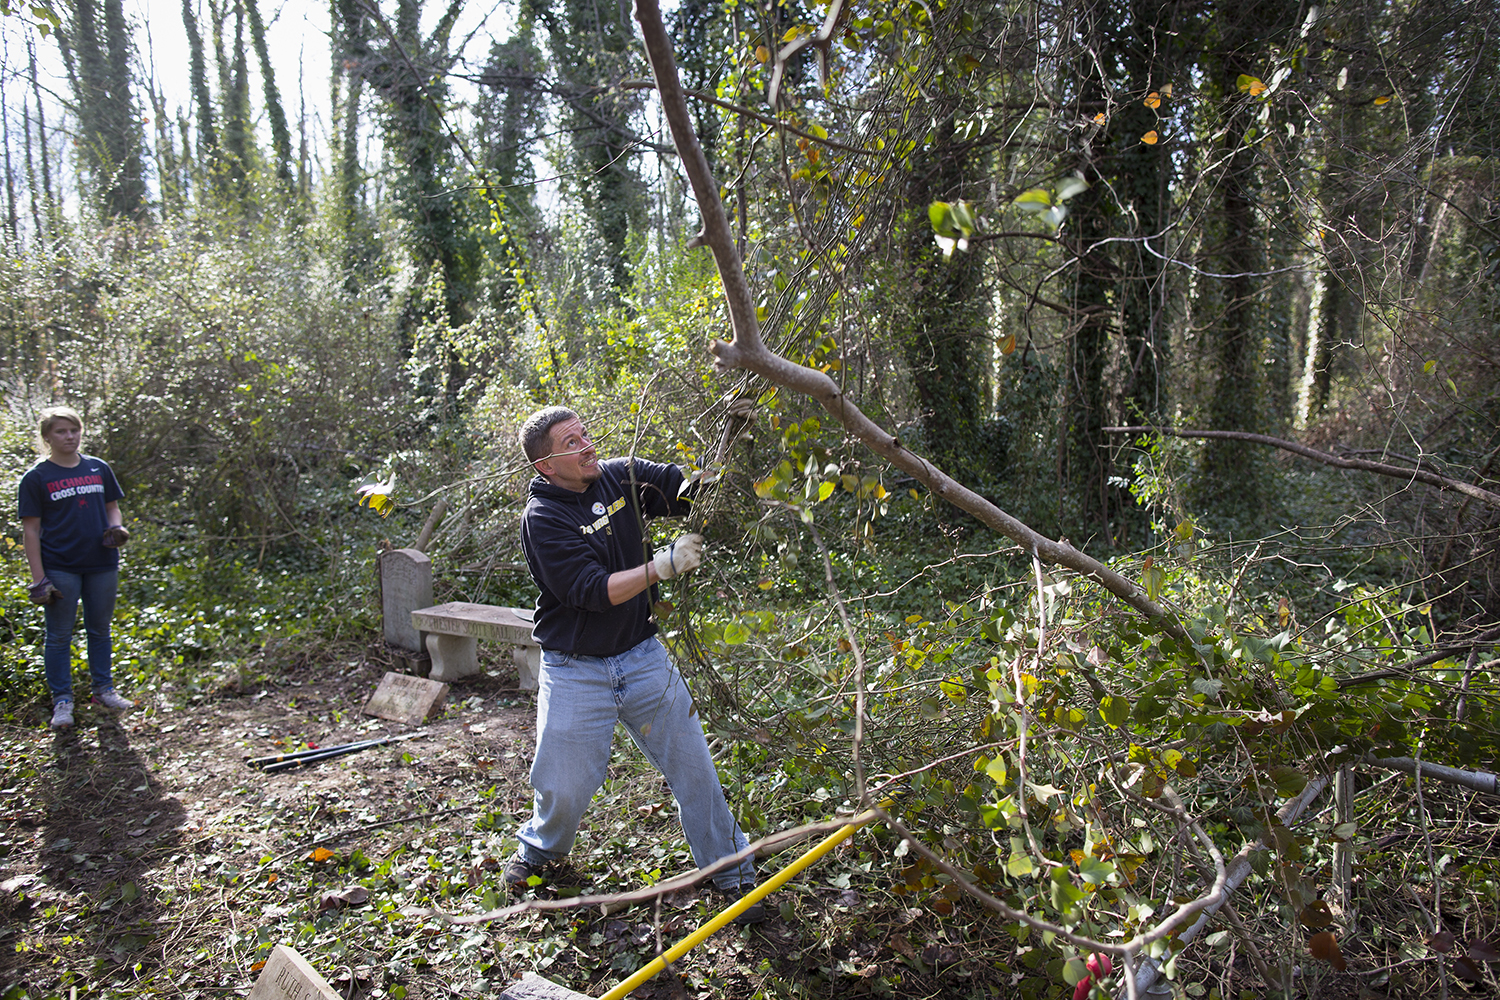 Volunteer Justin tugs at vines ensnaring tree branches during East End Cemetery work day, January 2015.©brianpalmer.photos 2015